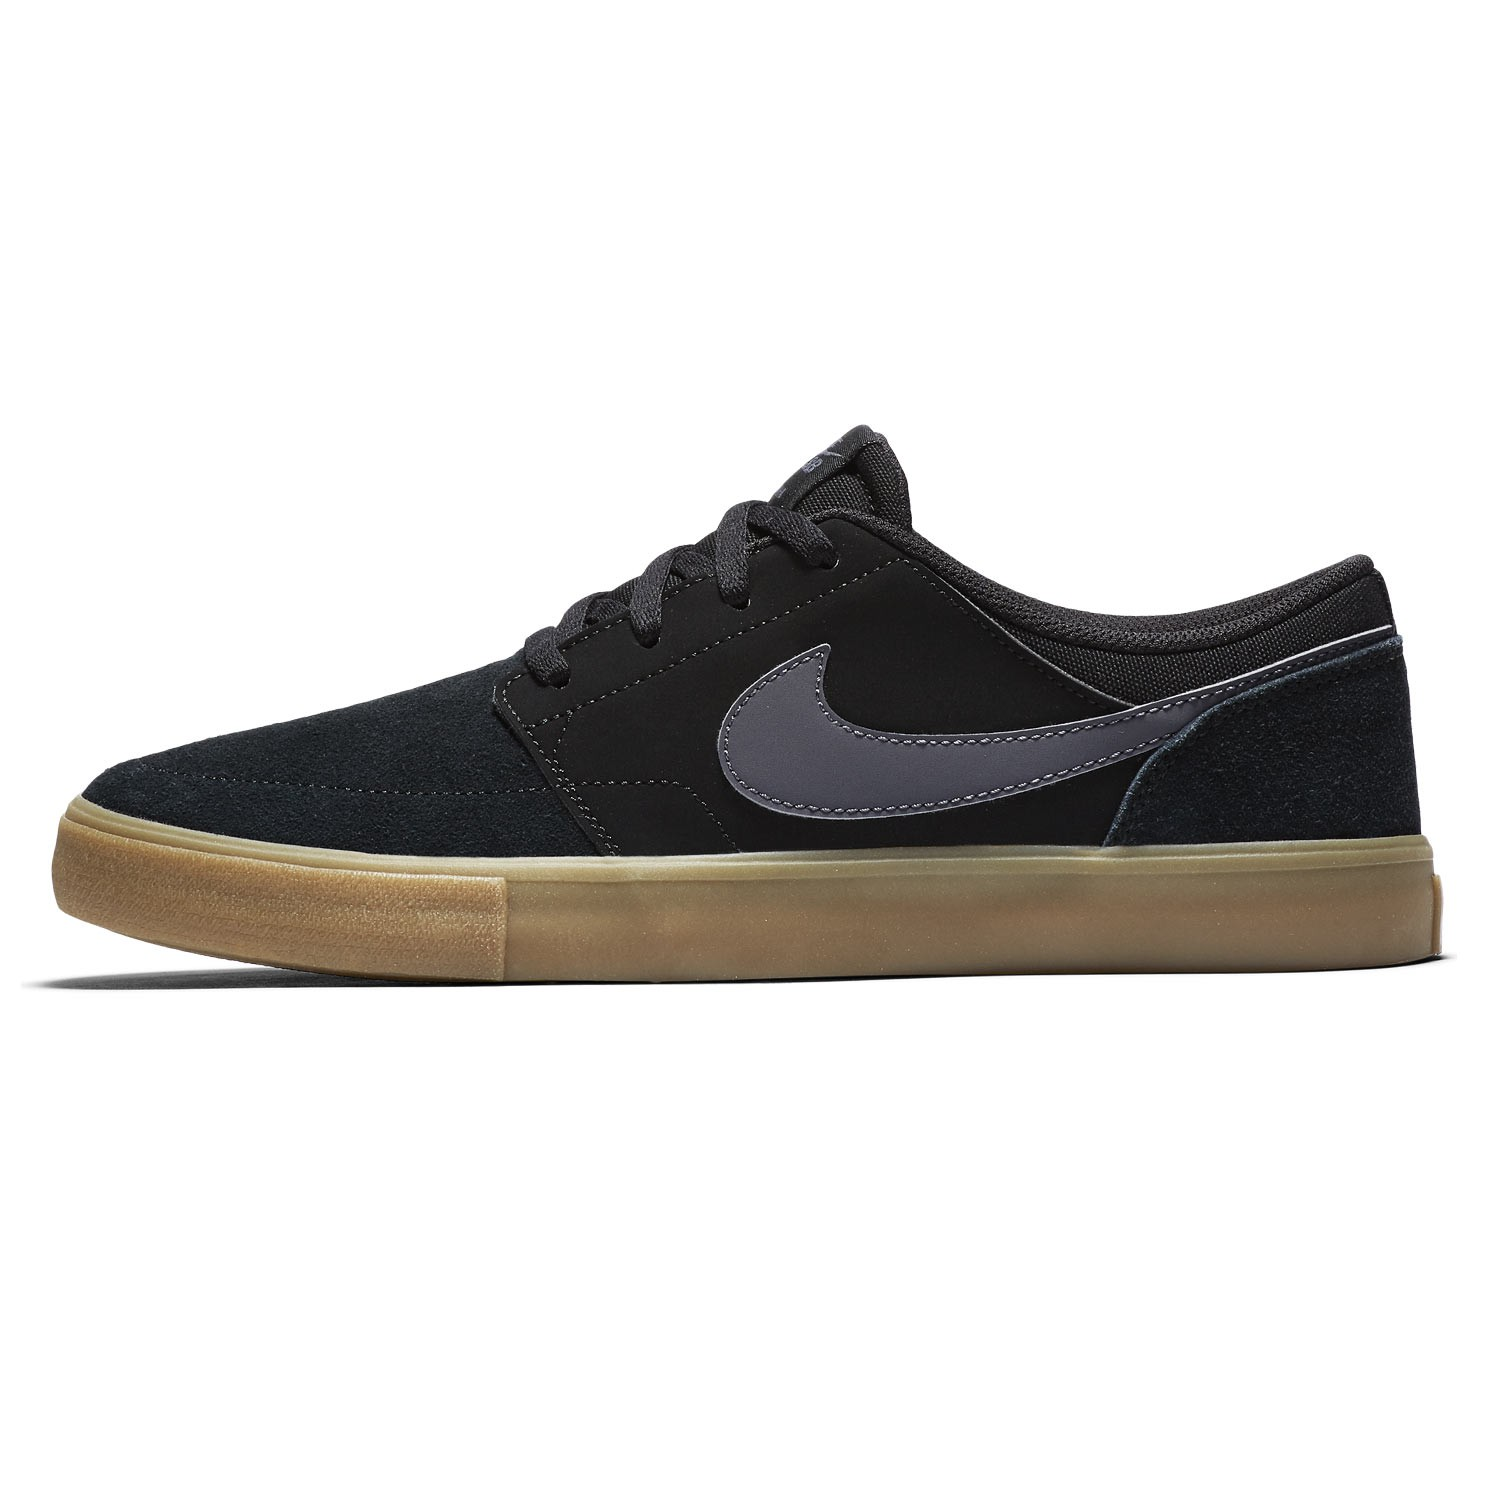 sneakers nike sb solarsoft portmore ii black dark grey gum light brown snowboard zezula. Black Bedroom Furniture Sets. Home Design Ideas